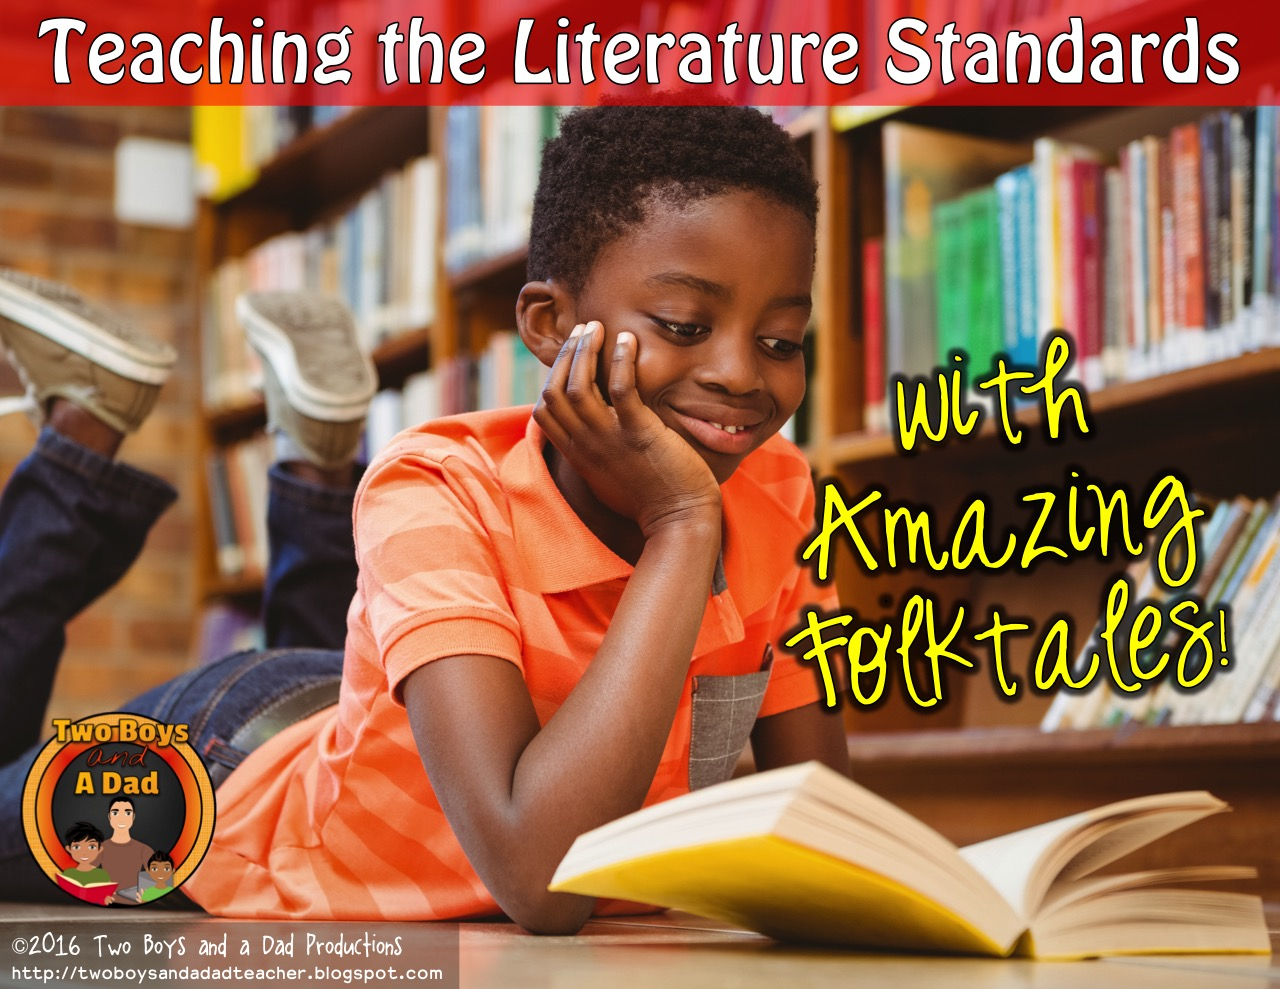 Use folktales to teach the literature standards